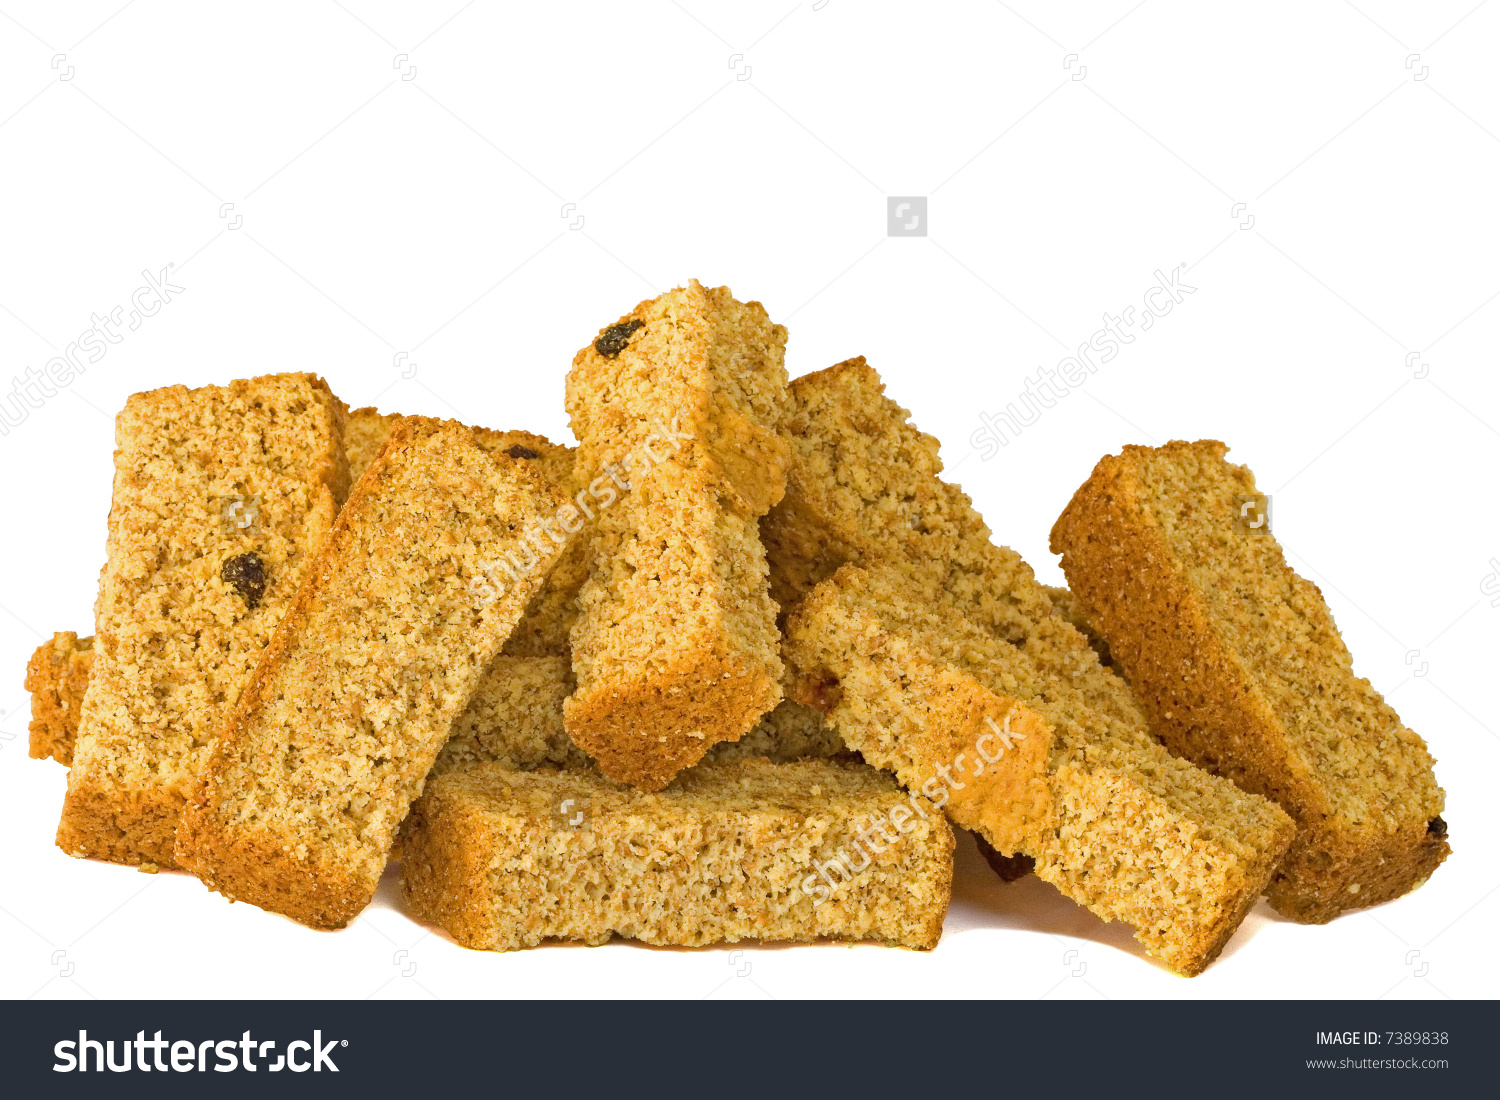 Homemaid Health Rusk Raisins Against White Stock Photo 7389838.